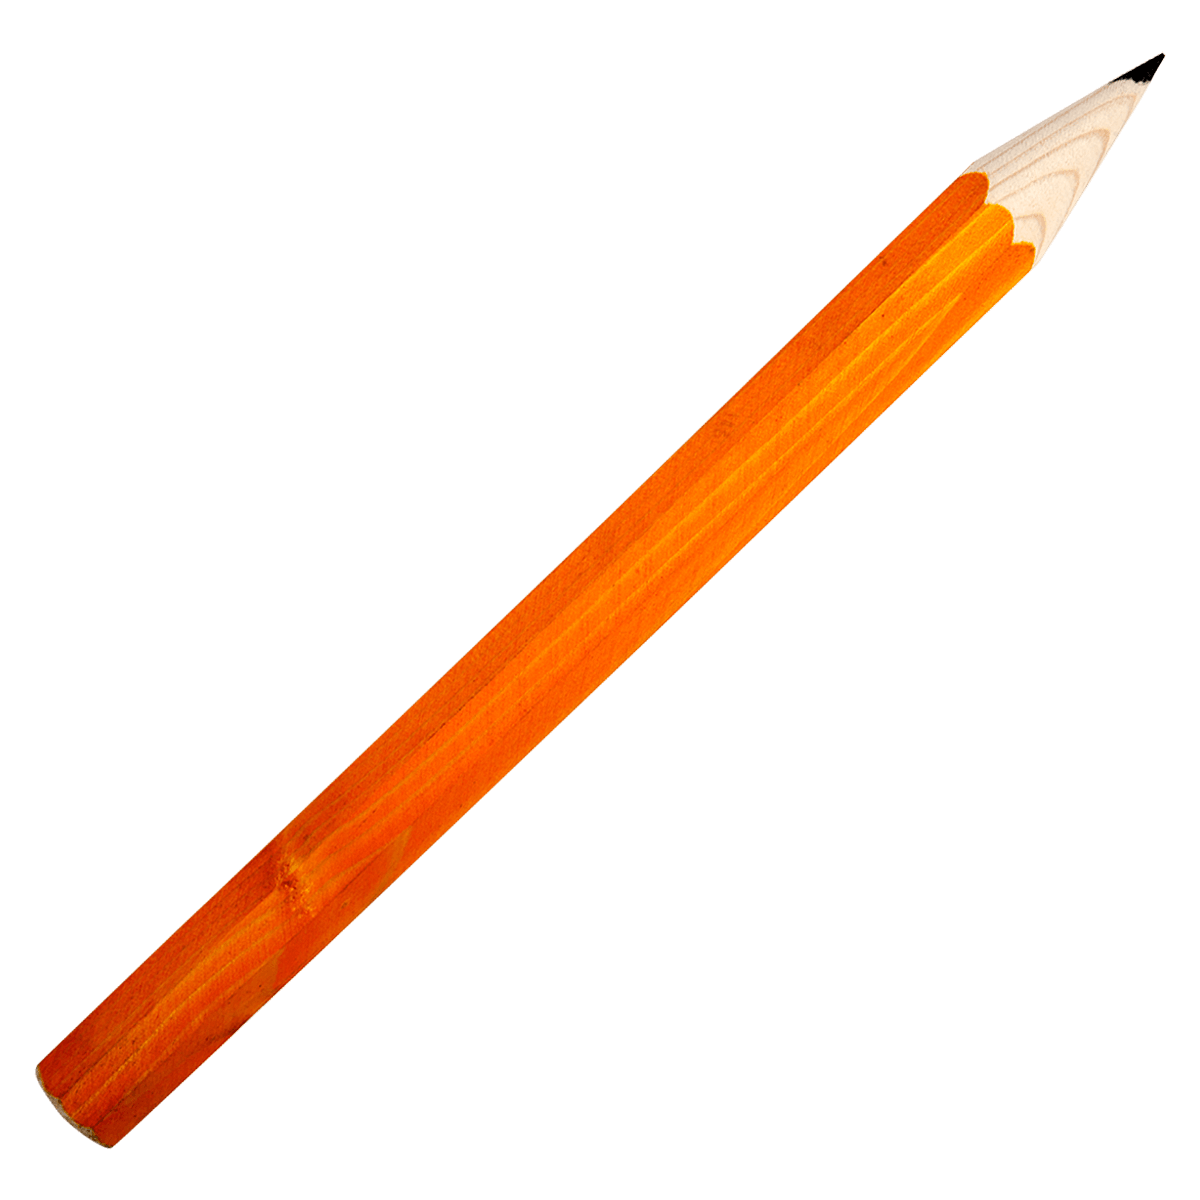 Giant Orange Pencil